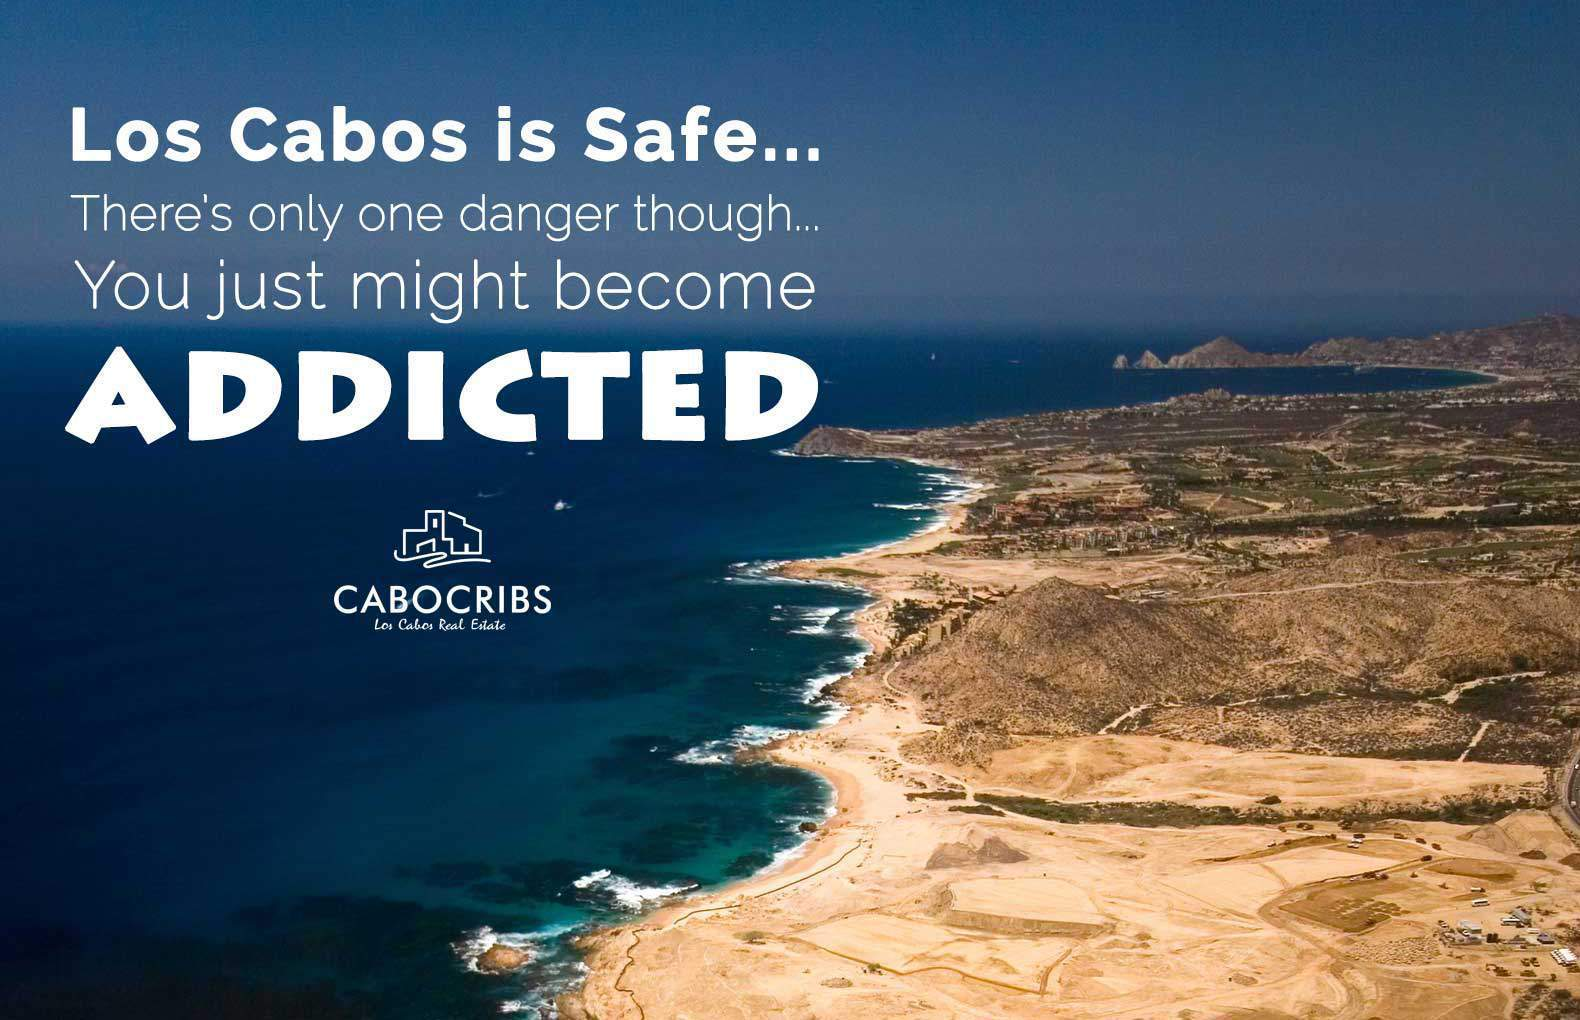 living-in-los-cabos-is-safe